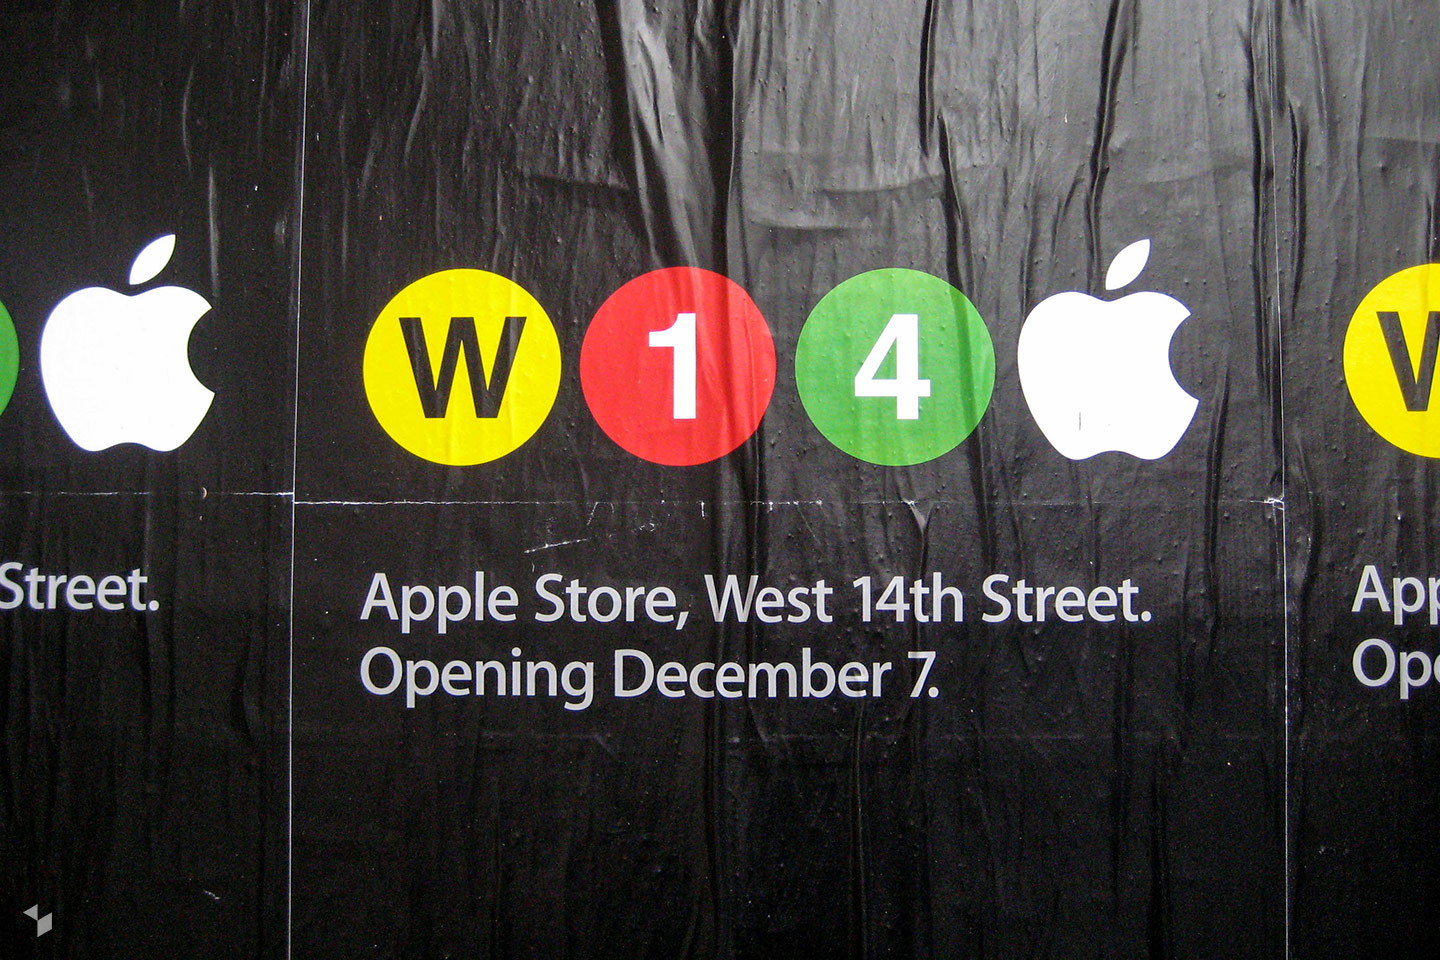 Apple West 14th Street in New York City (USA) eröffnete am 7. Dezember 2007